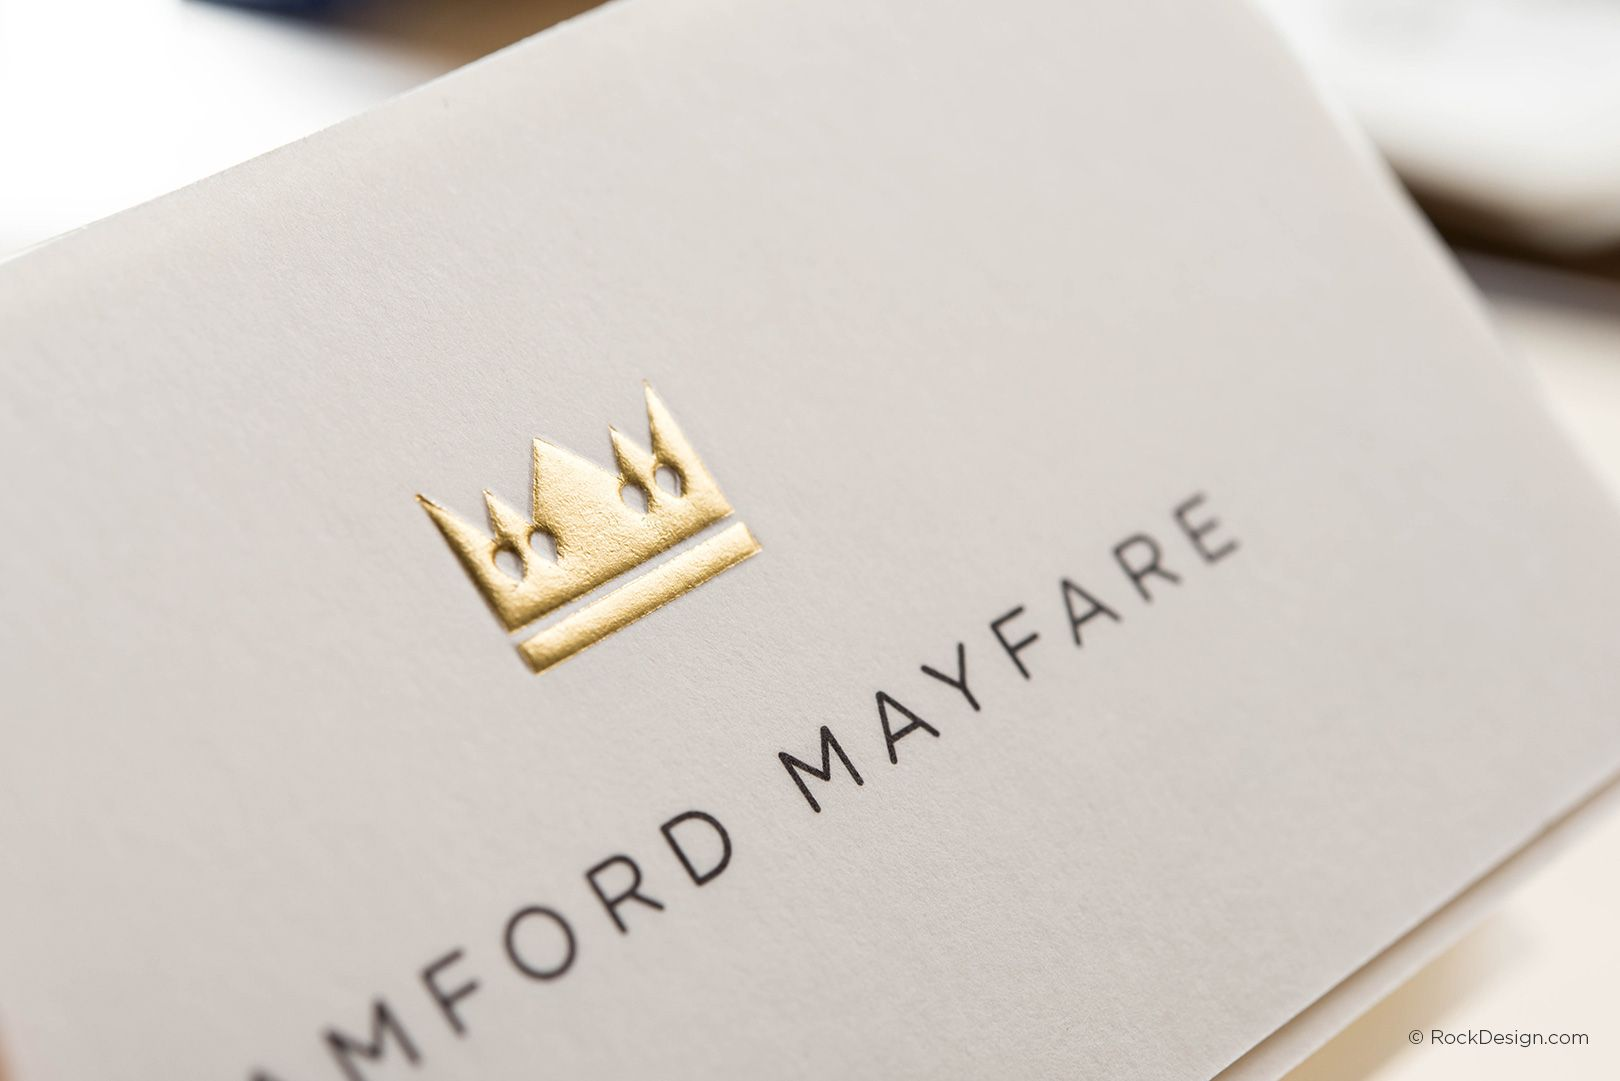 Modern Minimalist Cream Business Card Template With Gold Foil And Emboss Bamford Mayfare Uncoated Business Cards Embossed Business Cards Gold Business Card